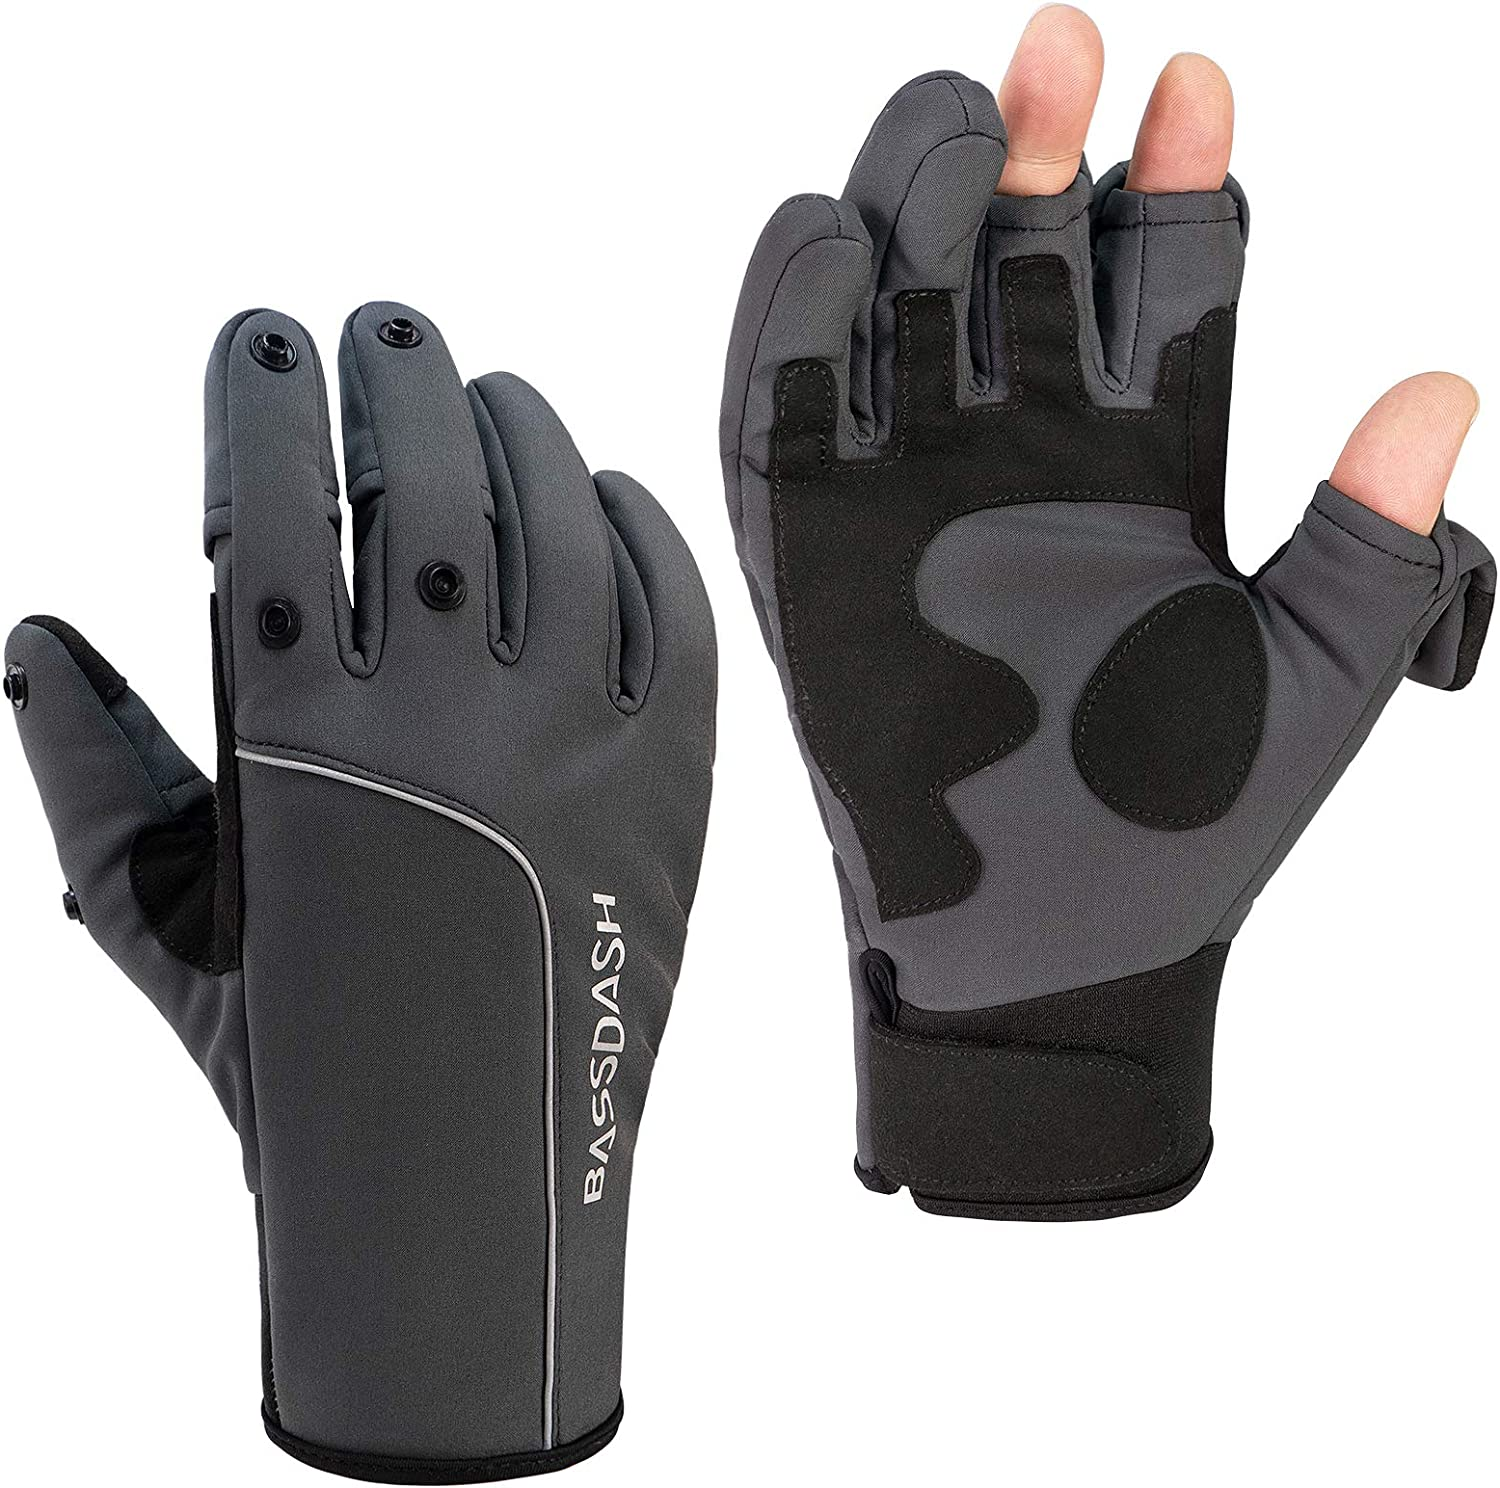 BASSDASH WintePro Insulated Fishing Repellent with Gloves Discount Free shipping / New is also underway Water